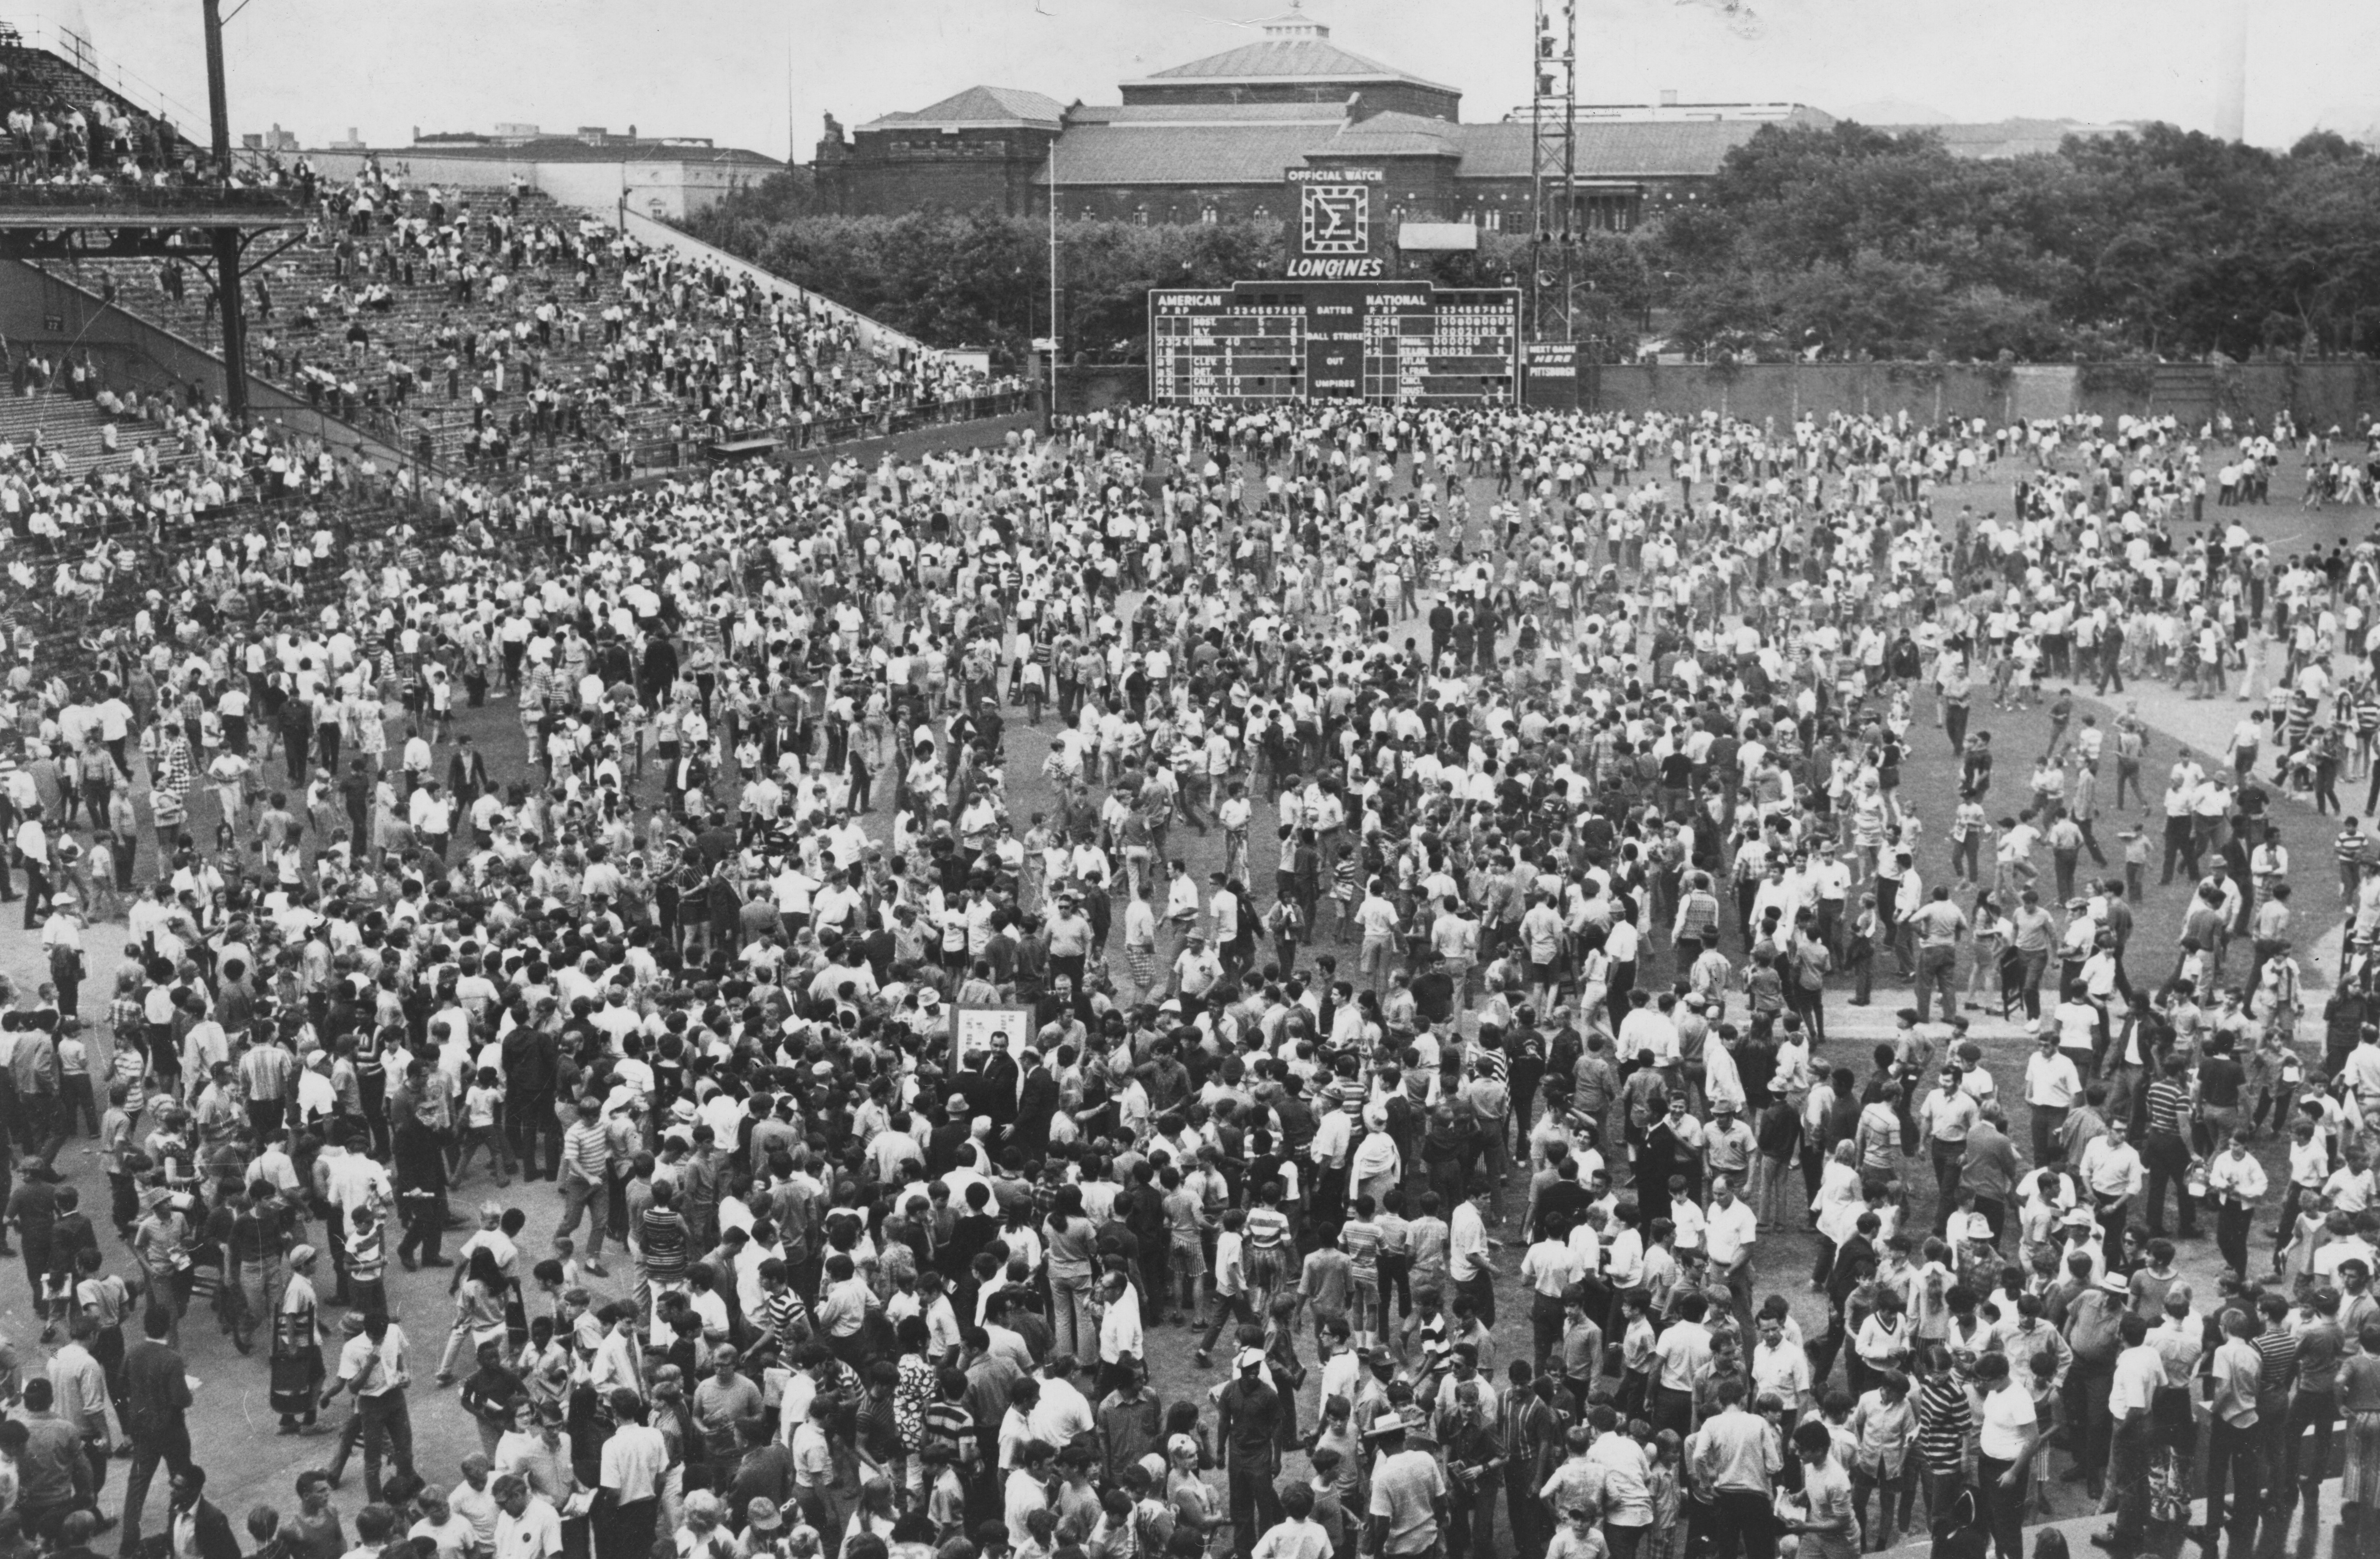 """forbes field essays and memories Fans claim pieces of forbes field after the last game there 1  with just my  memories when, suddenly, there was a mad rush toward the  the pg portfolio  welcomes """"baseball lore"""" submissions and other reader essays."""